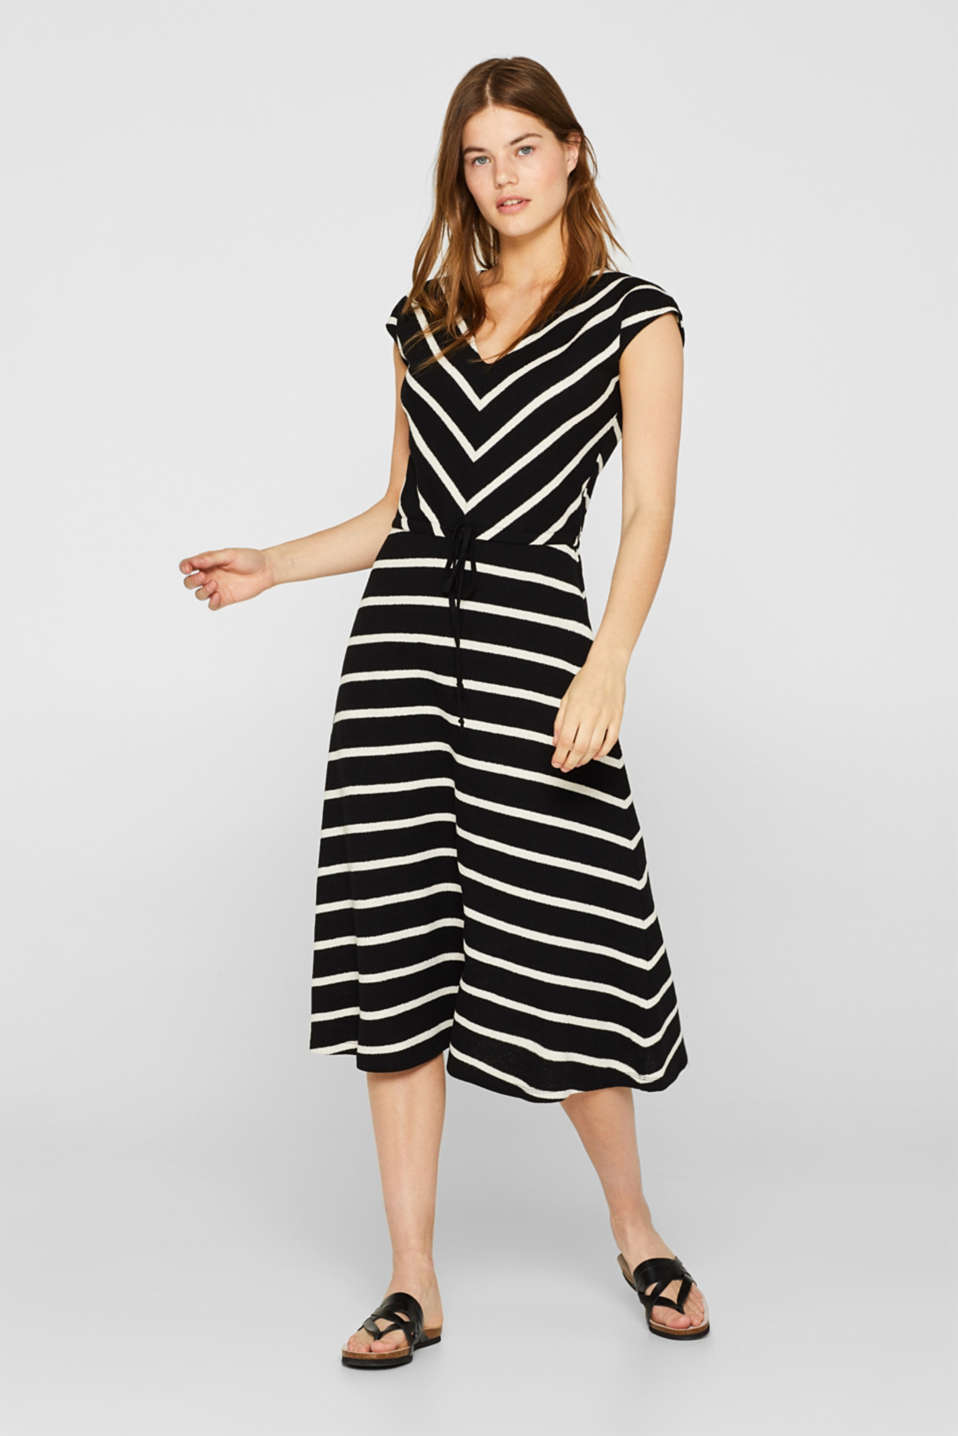 Esprit - Midi dress in textured knit fabric